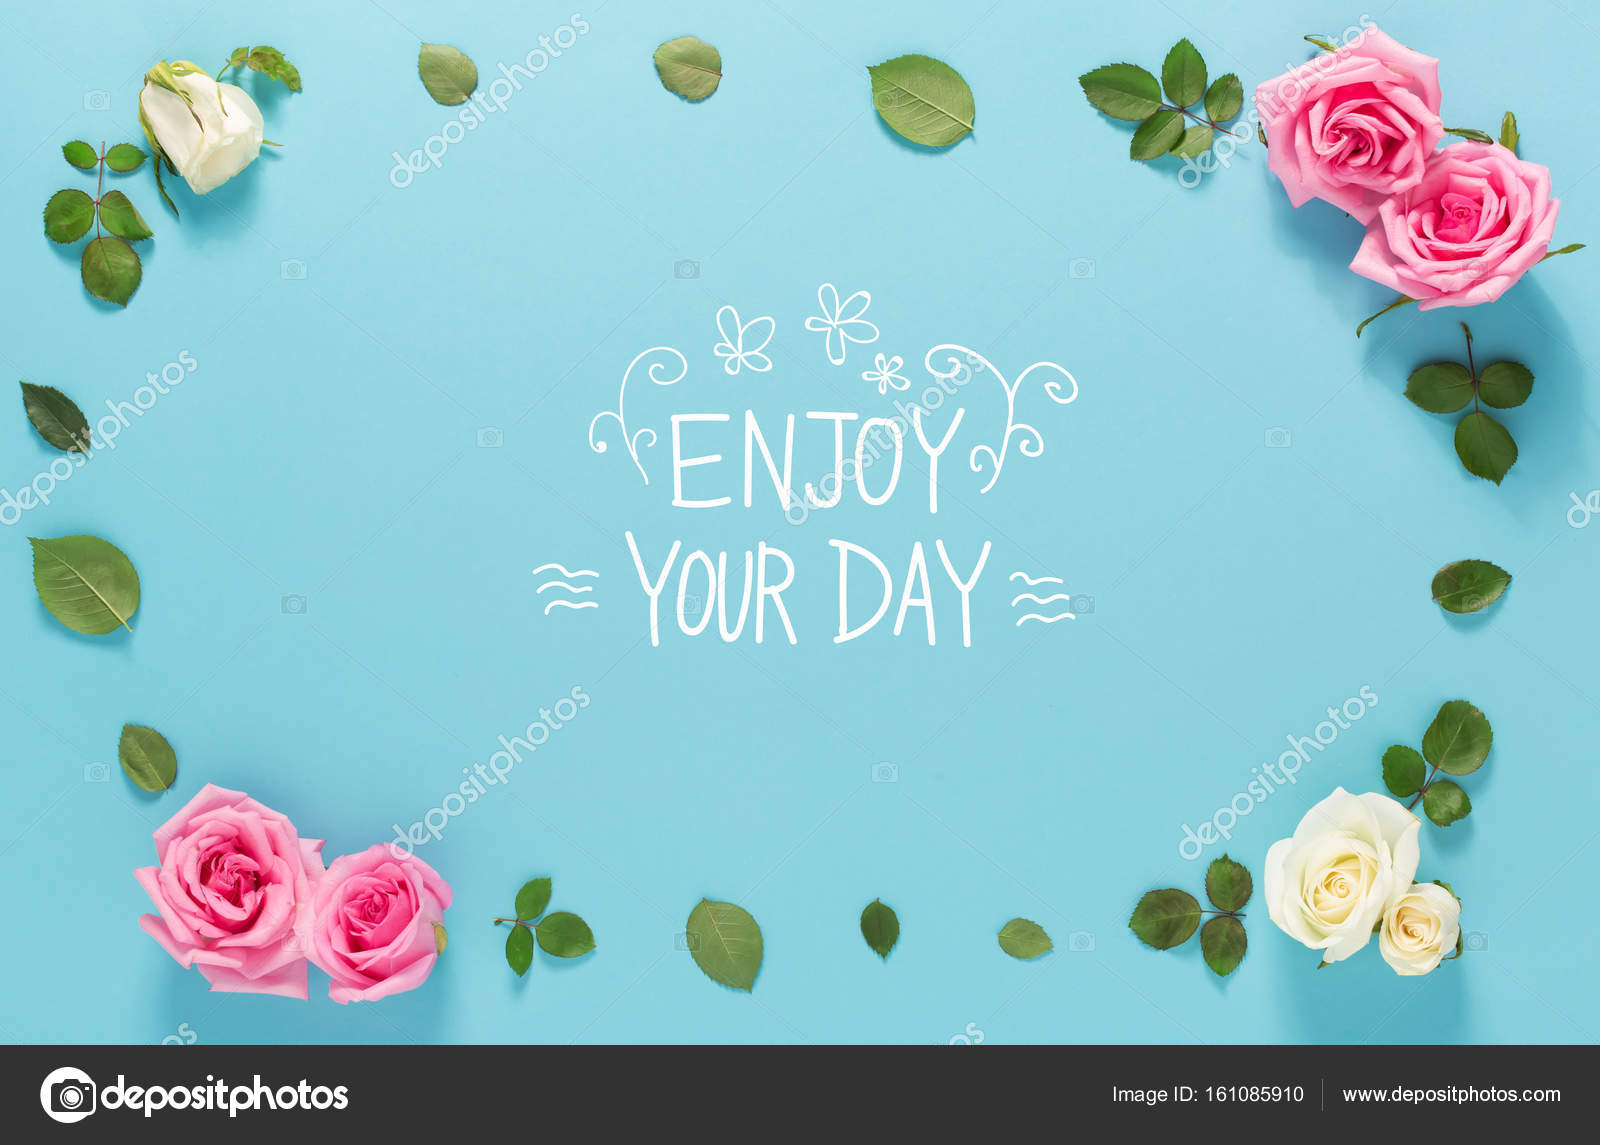 Awesome Enjoy Your Day Message U2014 Stock Photo